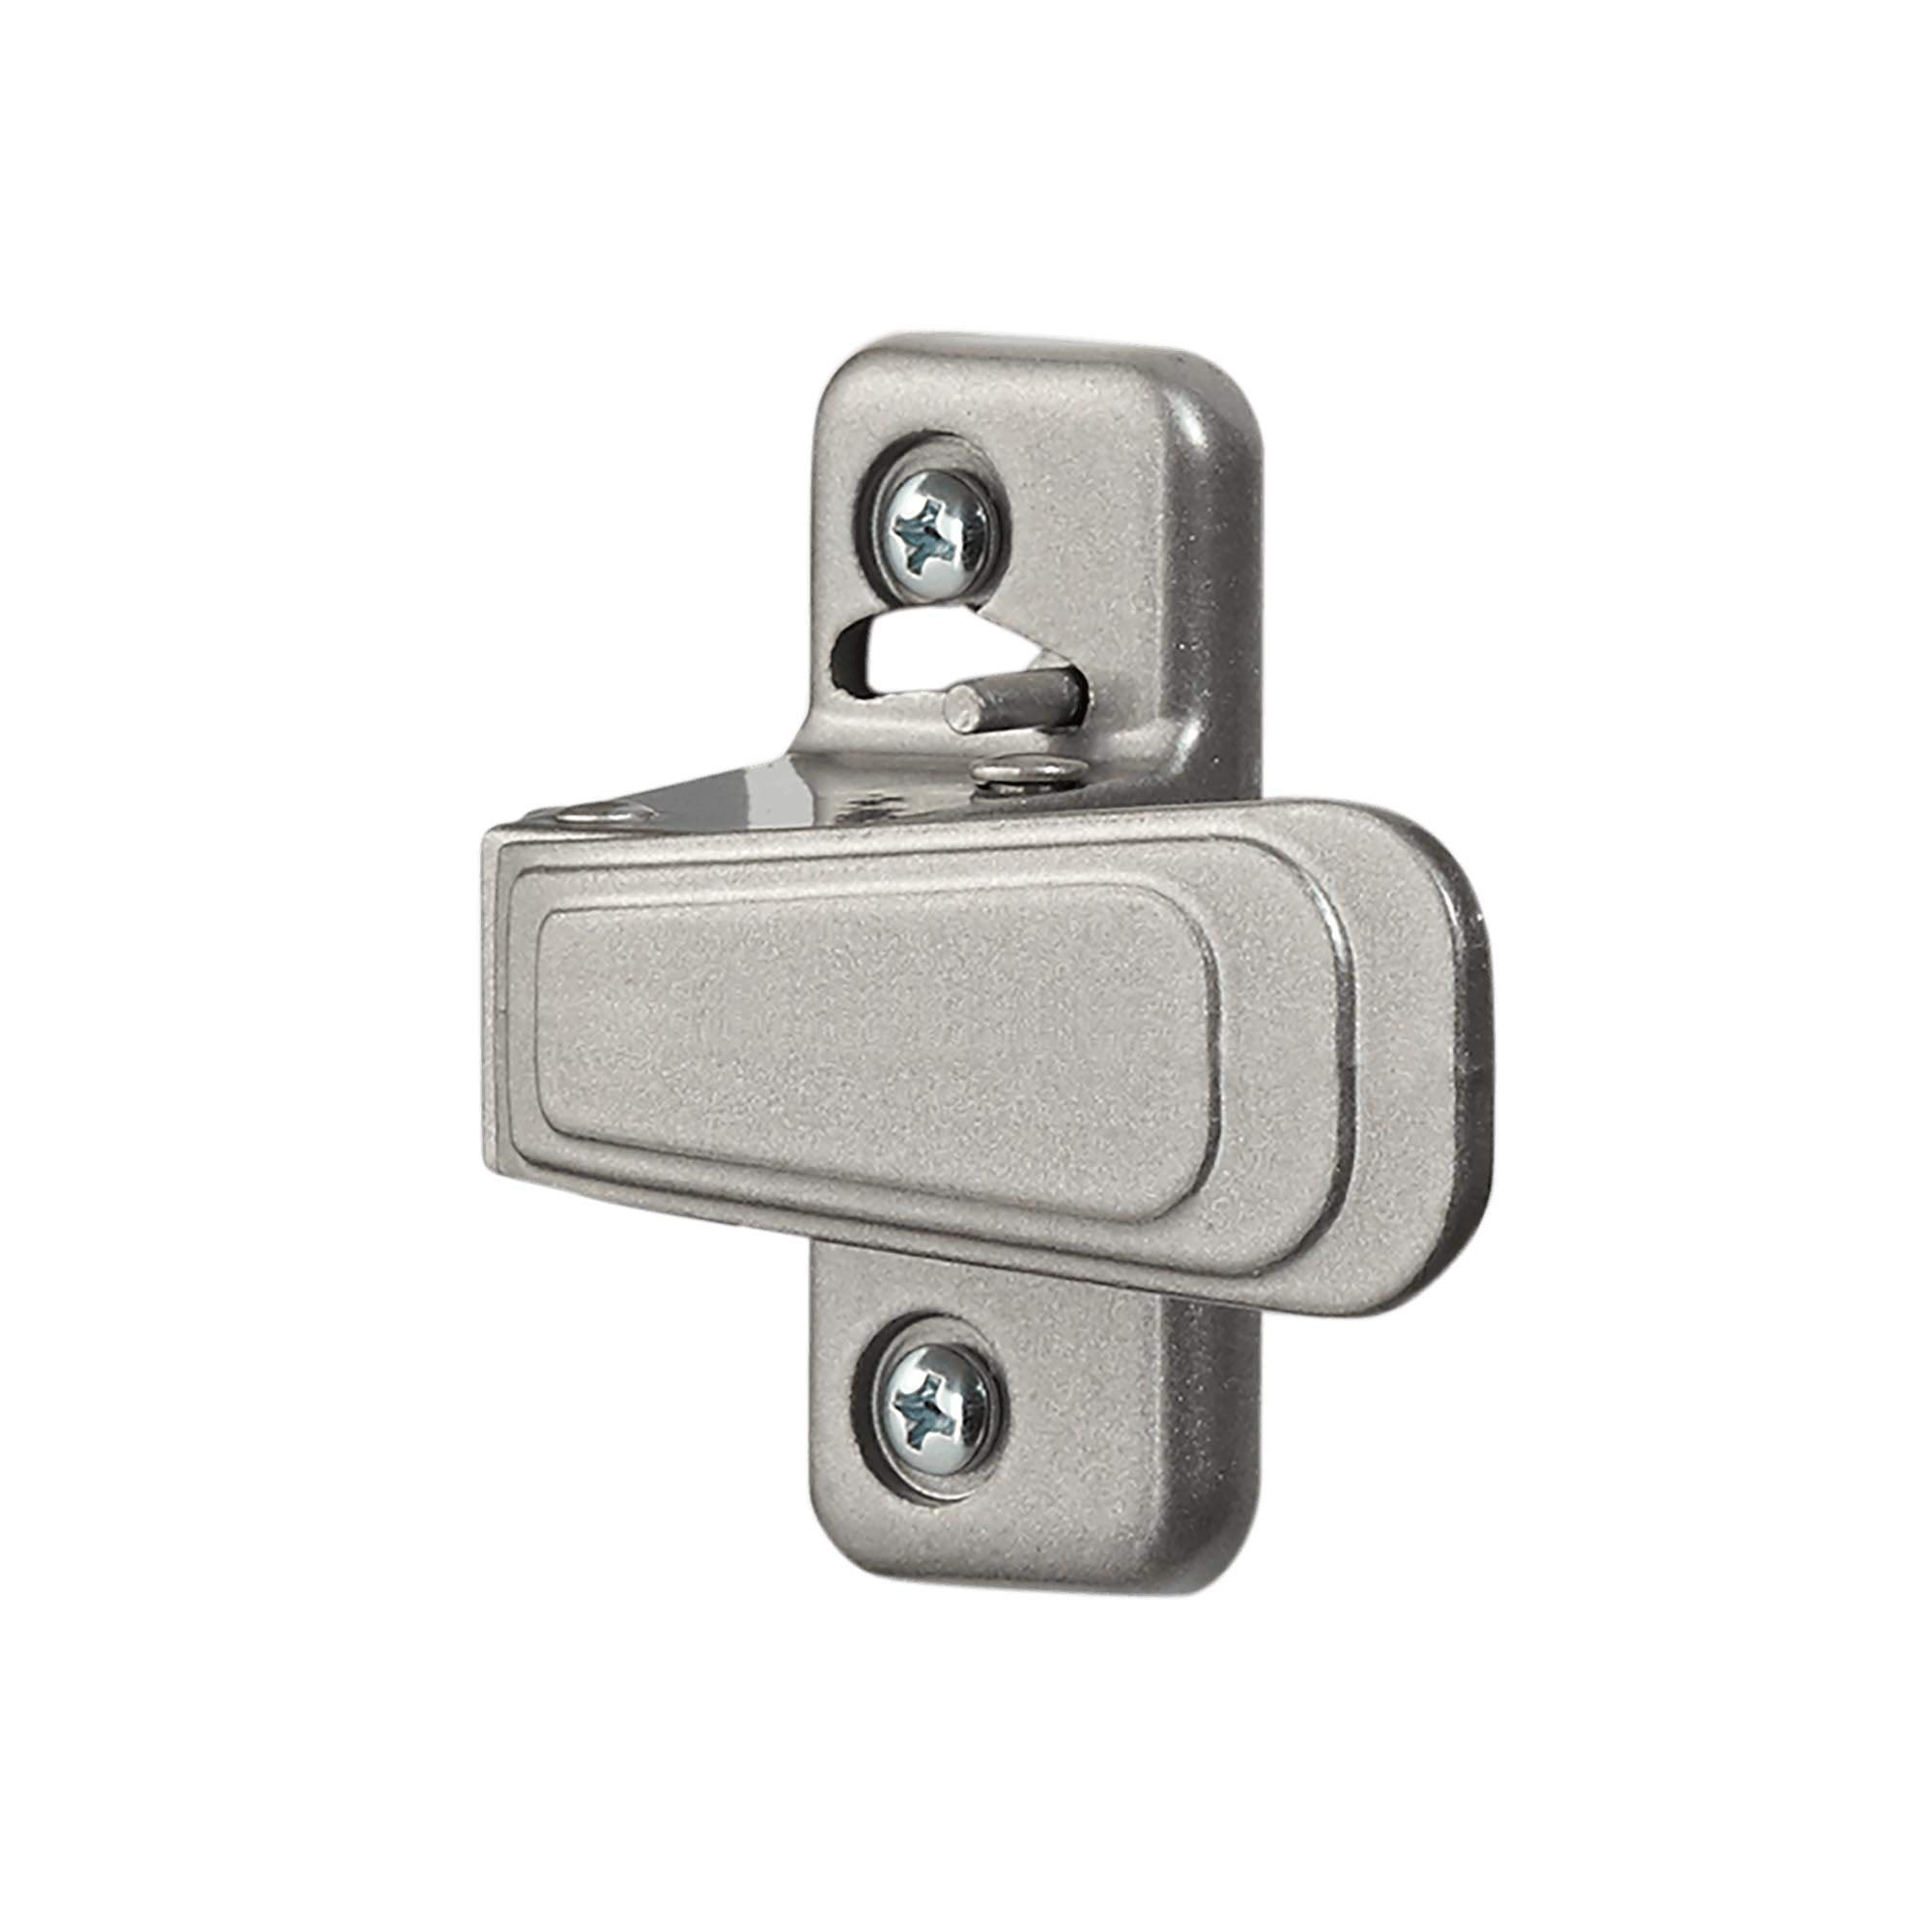 Ideal SecurityWC Inside Latch For Storm and Screen DoorsWith Night Latch, Locks from Inside Only Silver